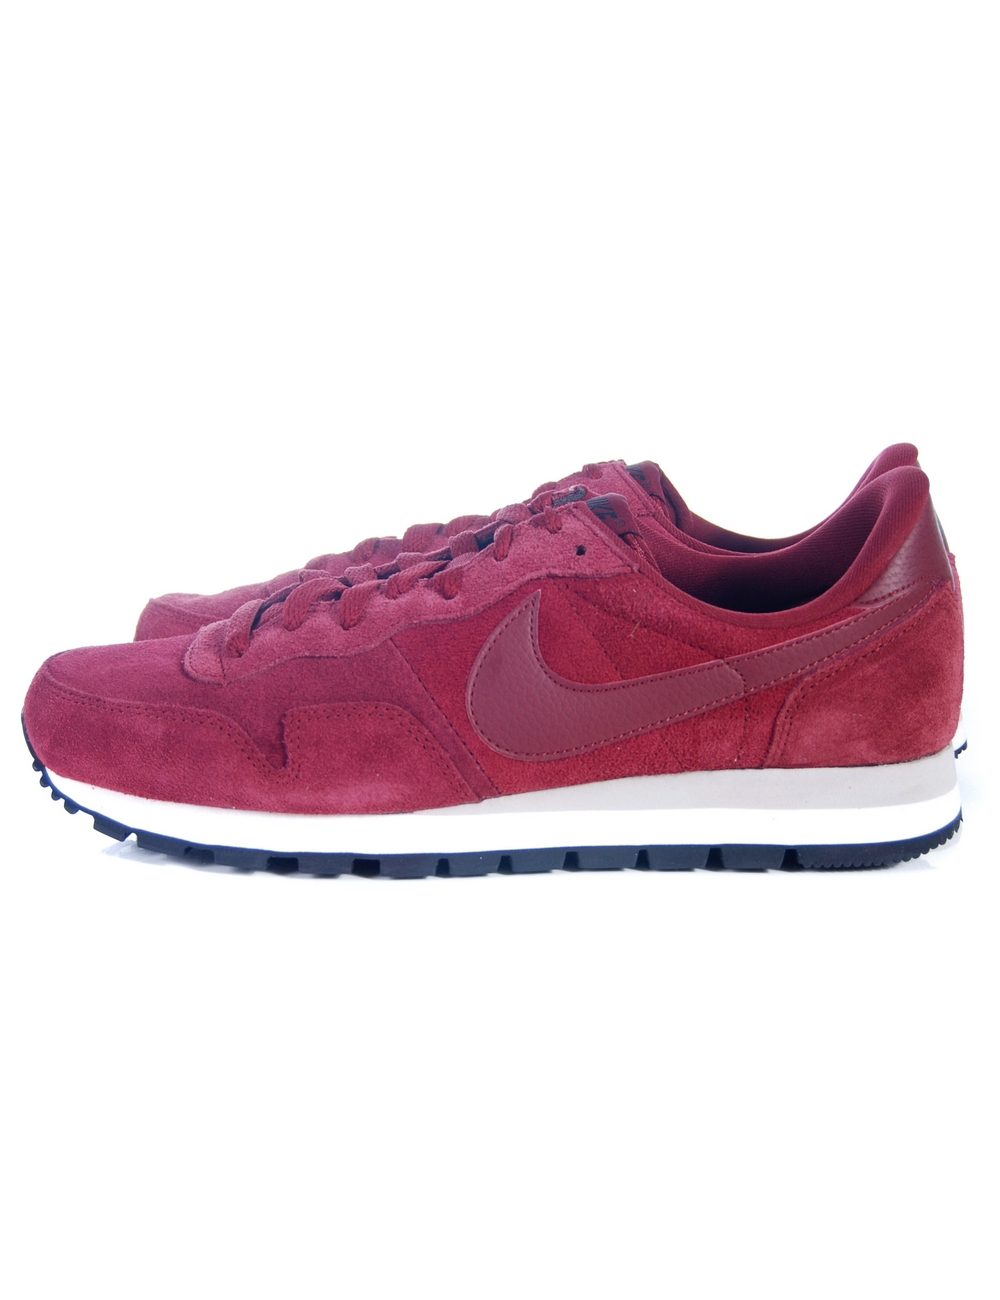 nike air pegasus 83 fat buddha store blog all the news. Black Bedroom Furniture Sets. Home Design Ideas